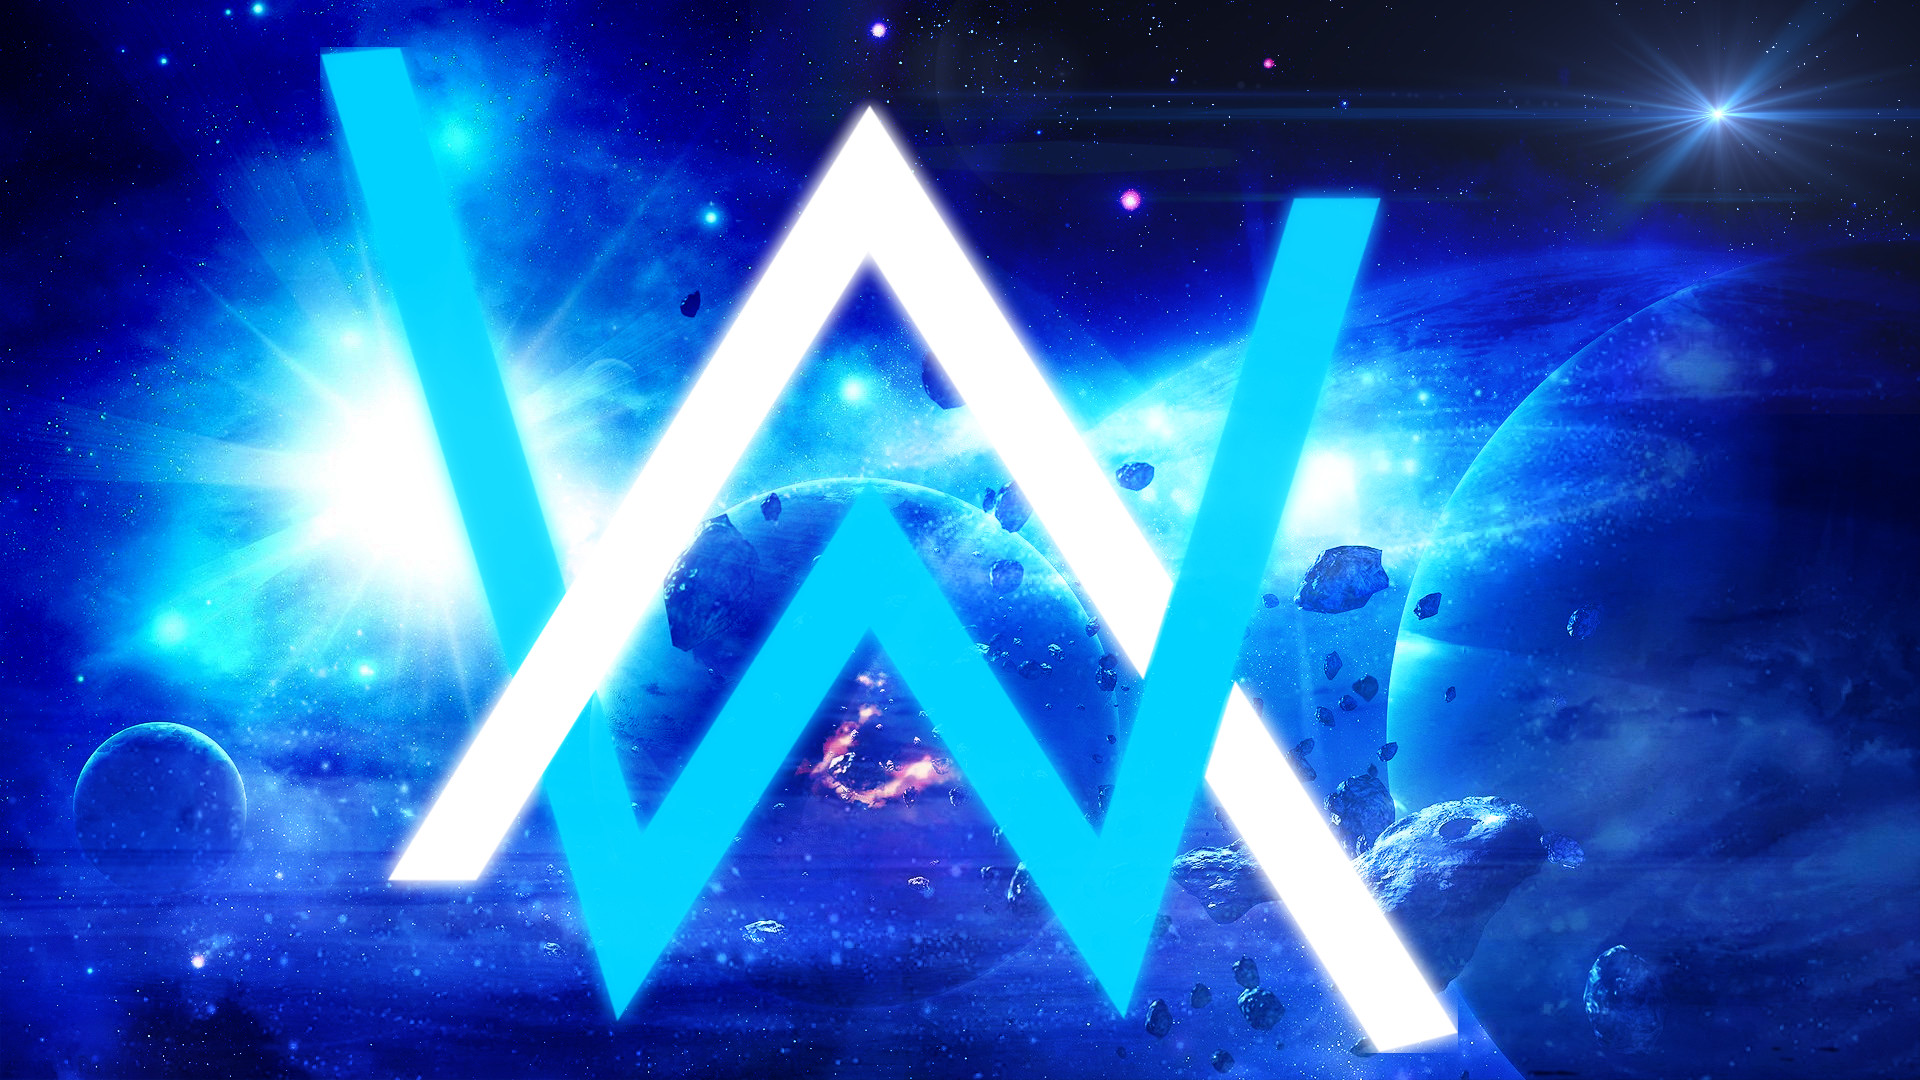 Alan walker wallpapers 73 images - Alan walker logo galaxy ...